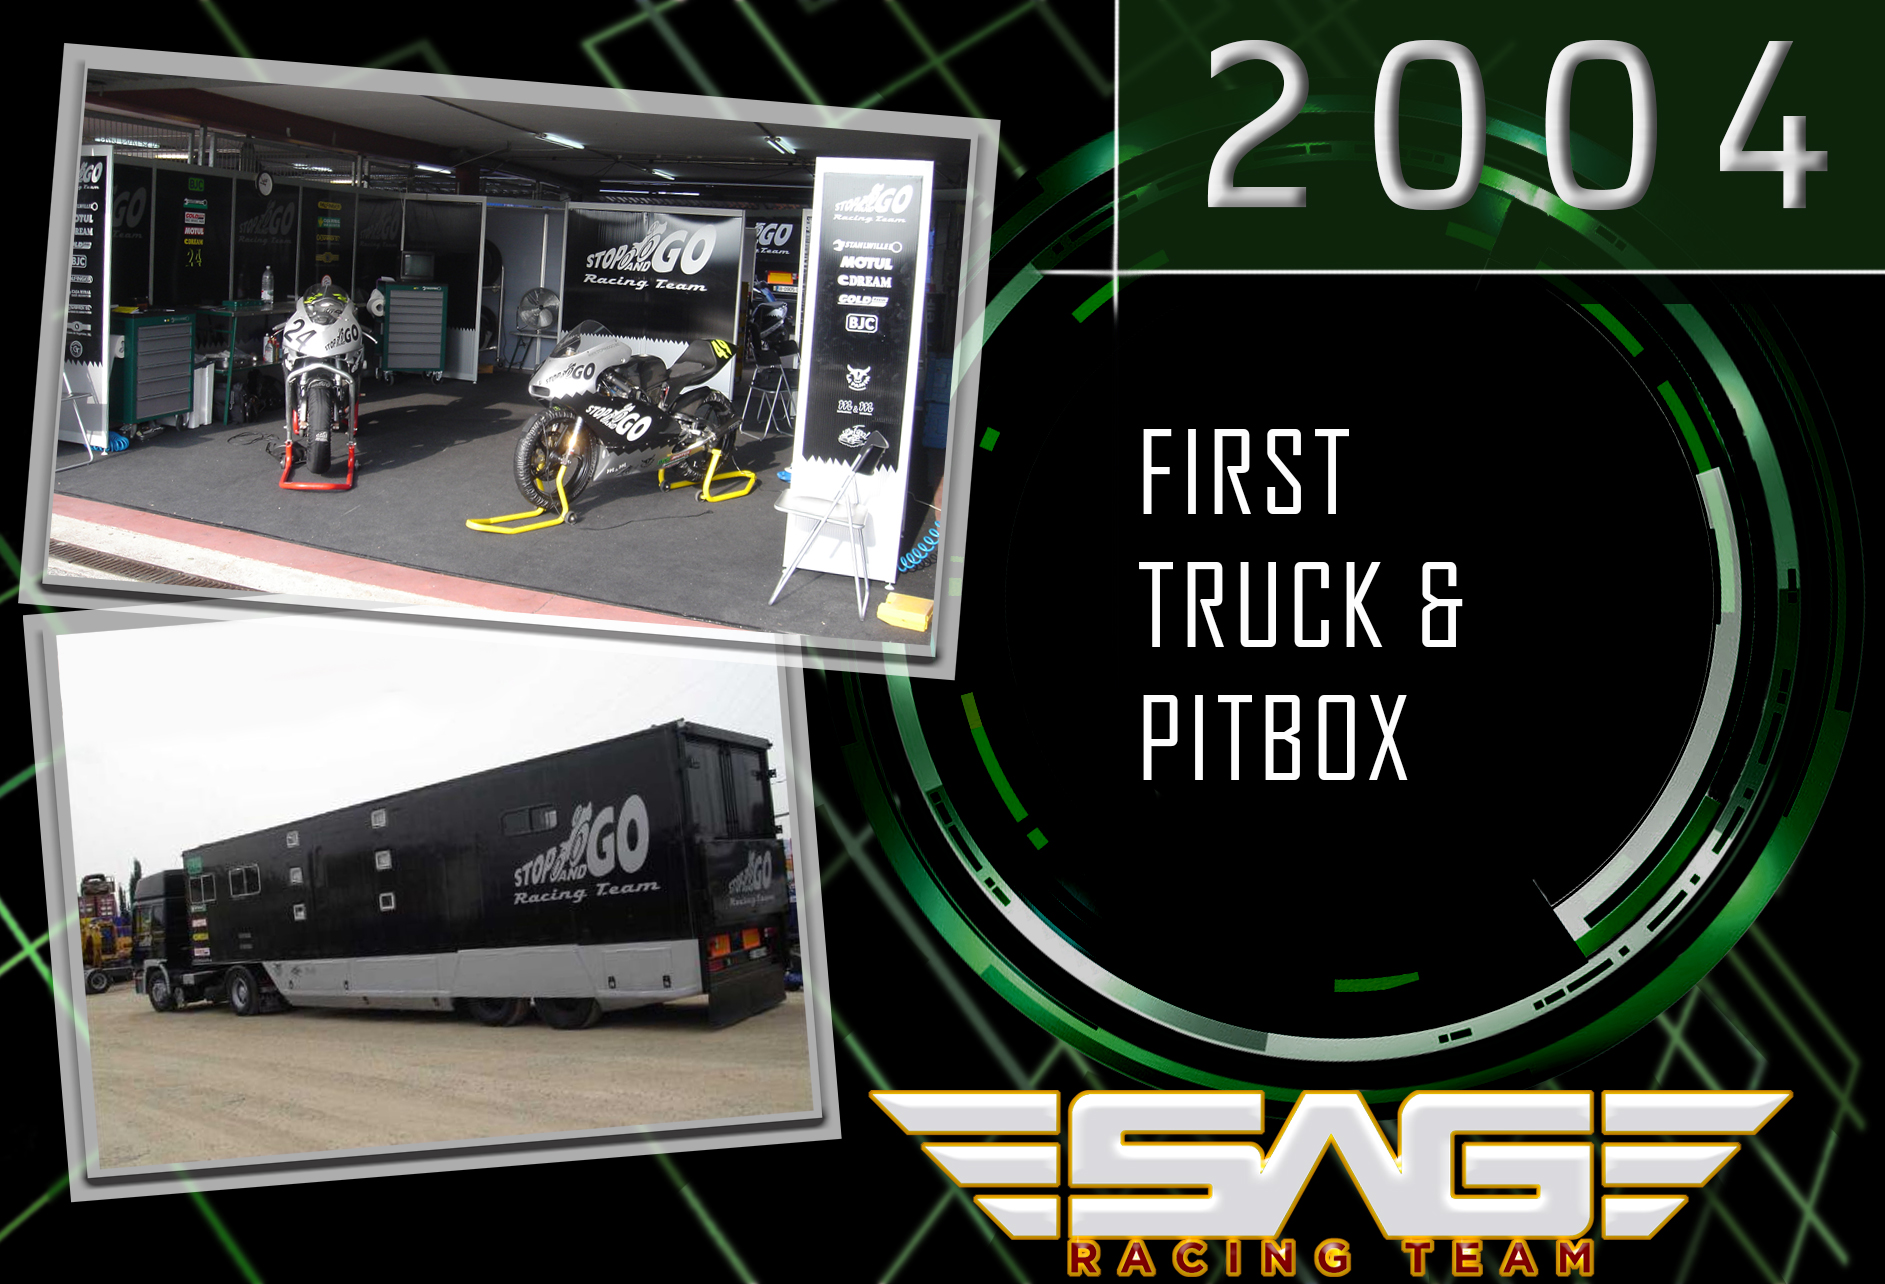 First Truck & Pitbox